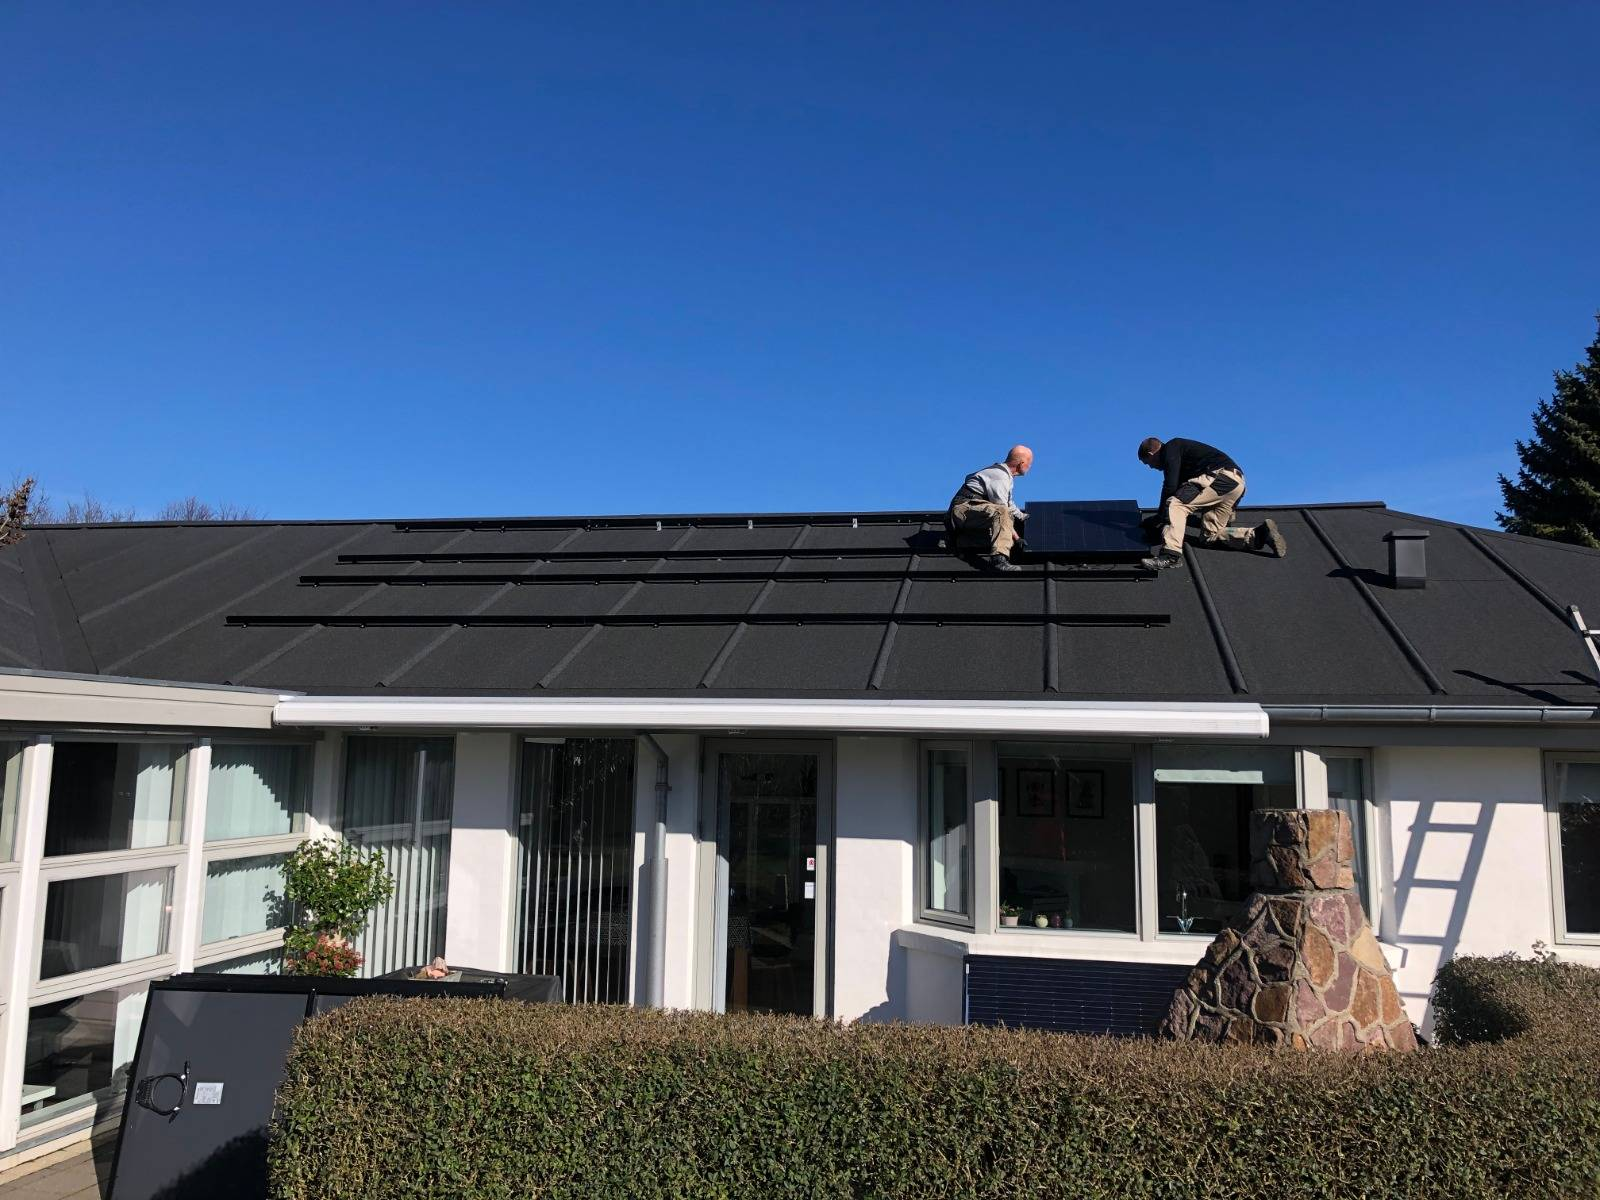 Home roof solar power system all black